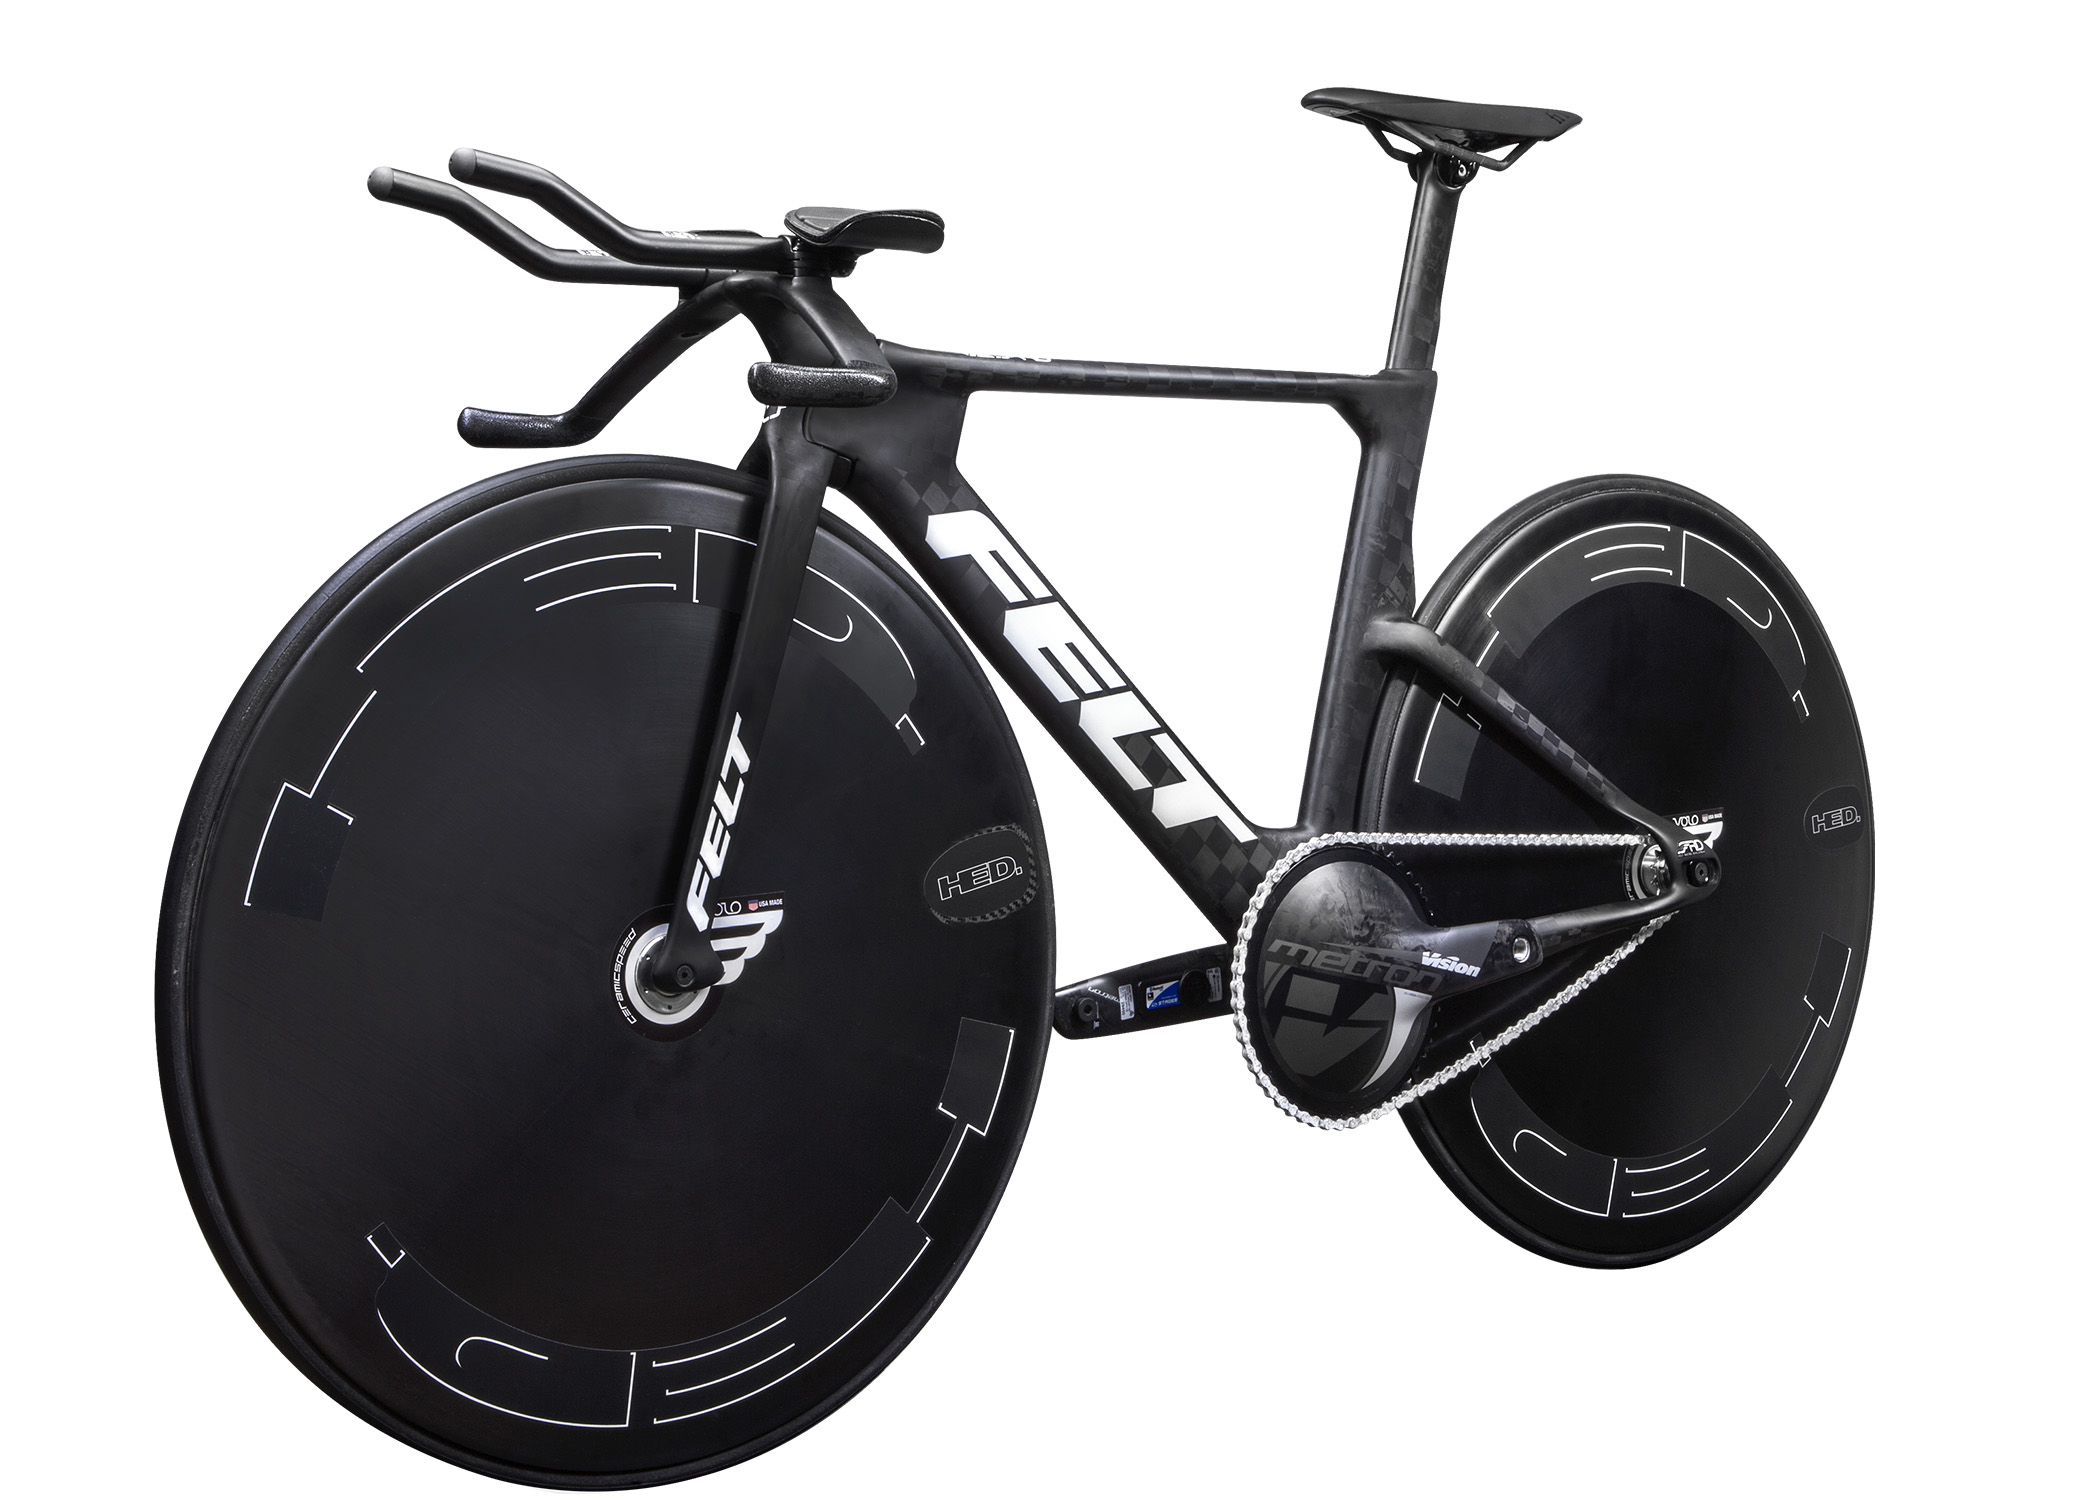 Track    Felt's track bikes are the most sought after in the world. Ridden by the sport's elite riders to Olympic and World Championship medals, Felt track bikes are in a class all their own.